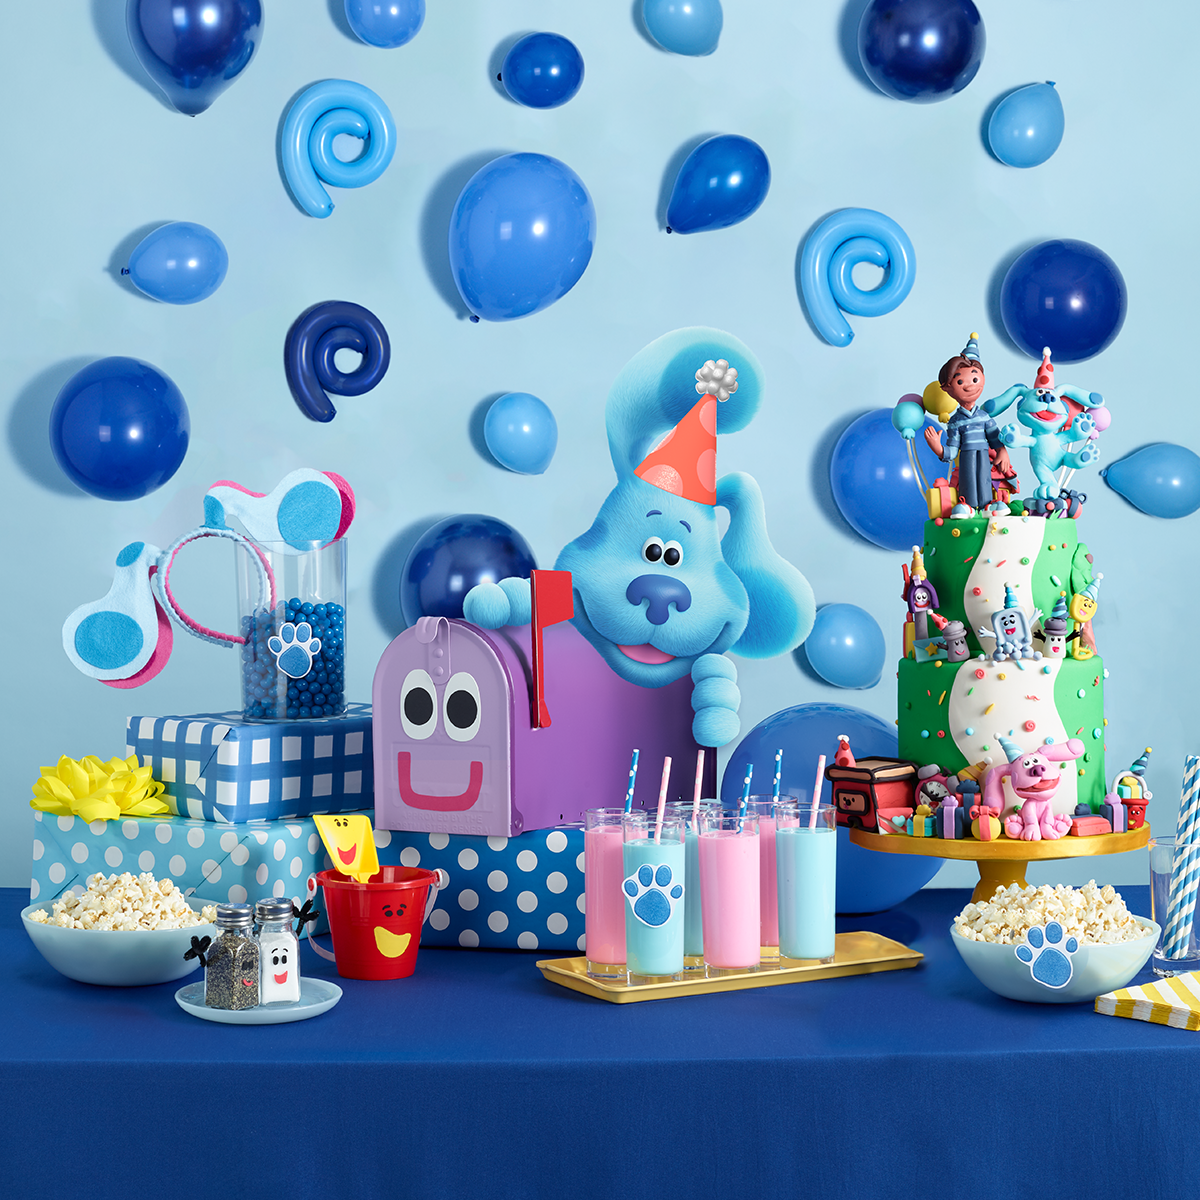 Blue's Clues & You! Party Tablescape